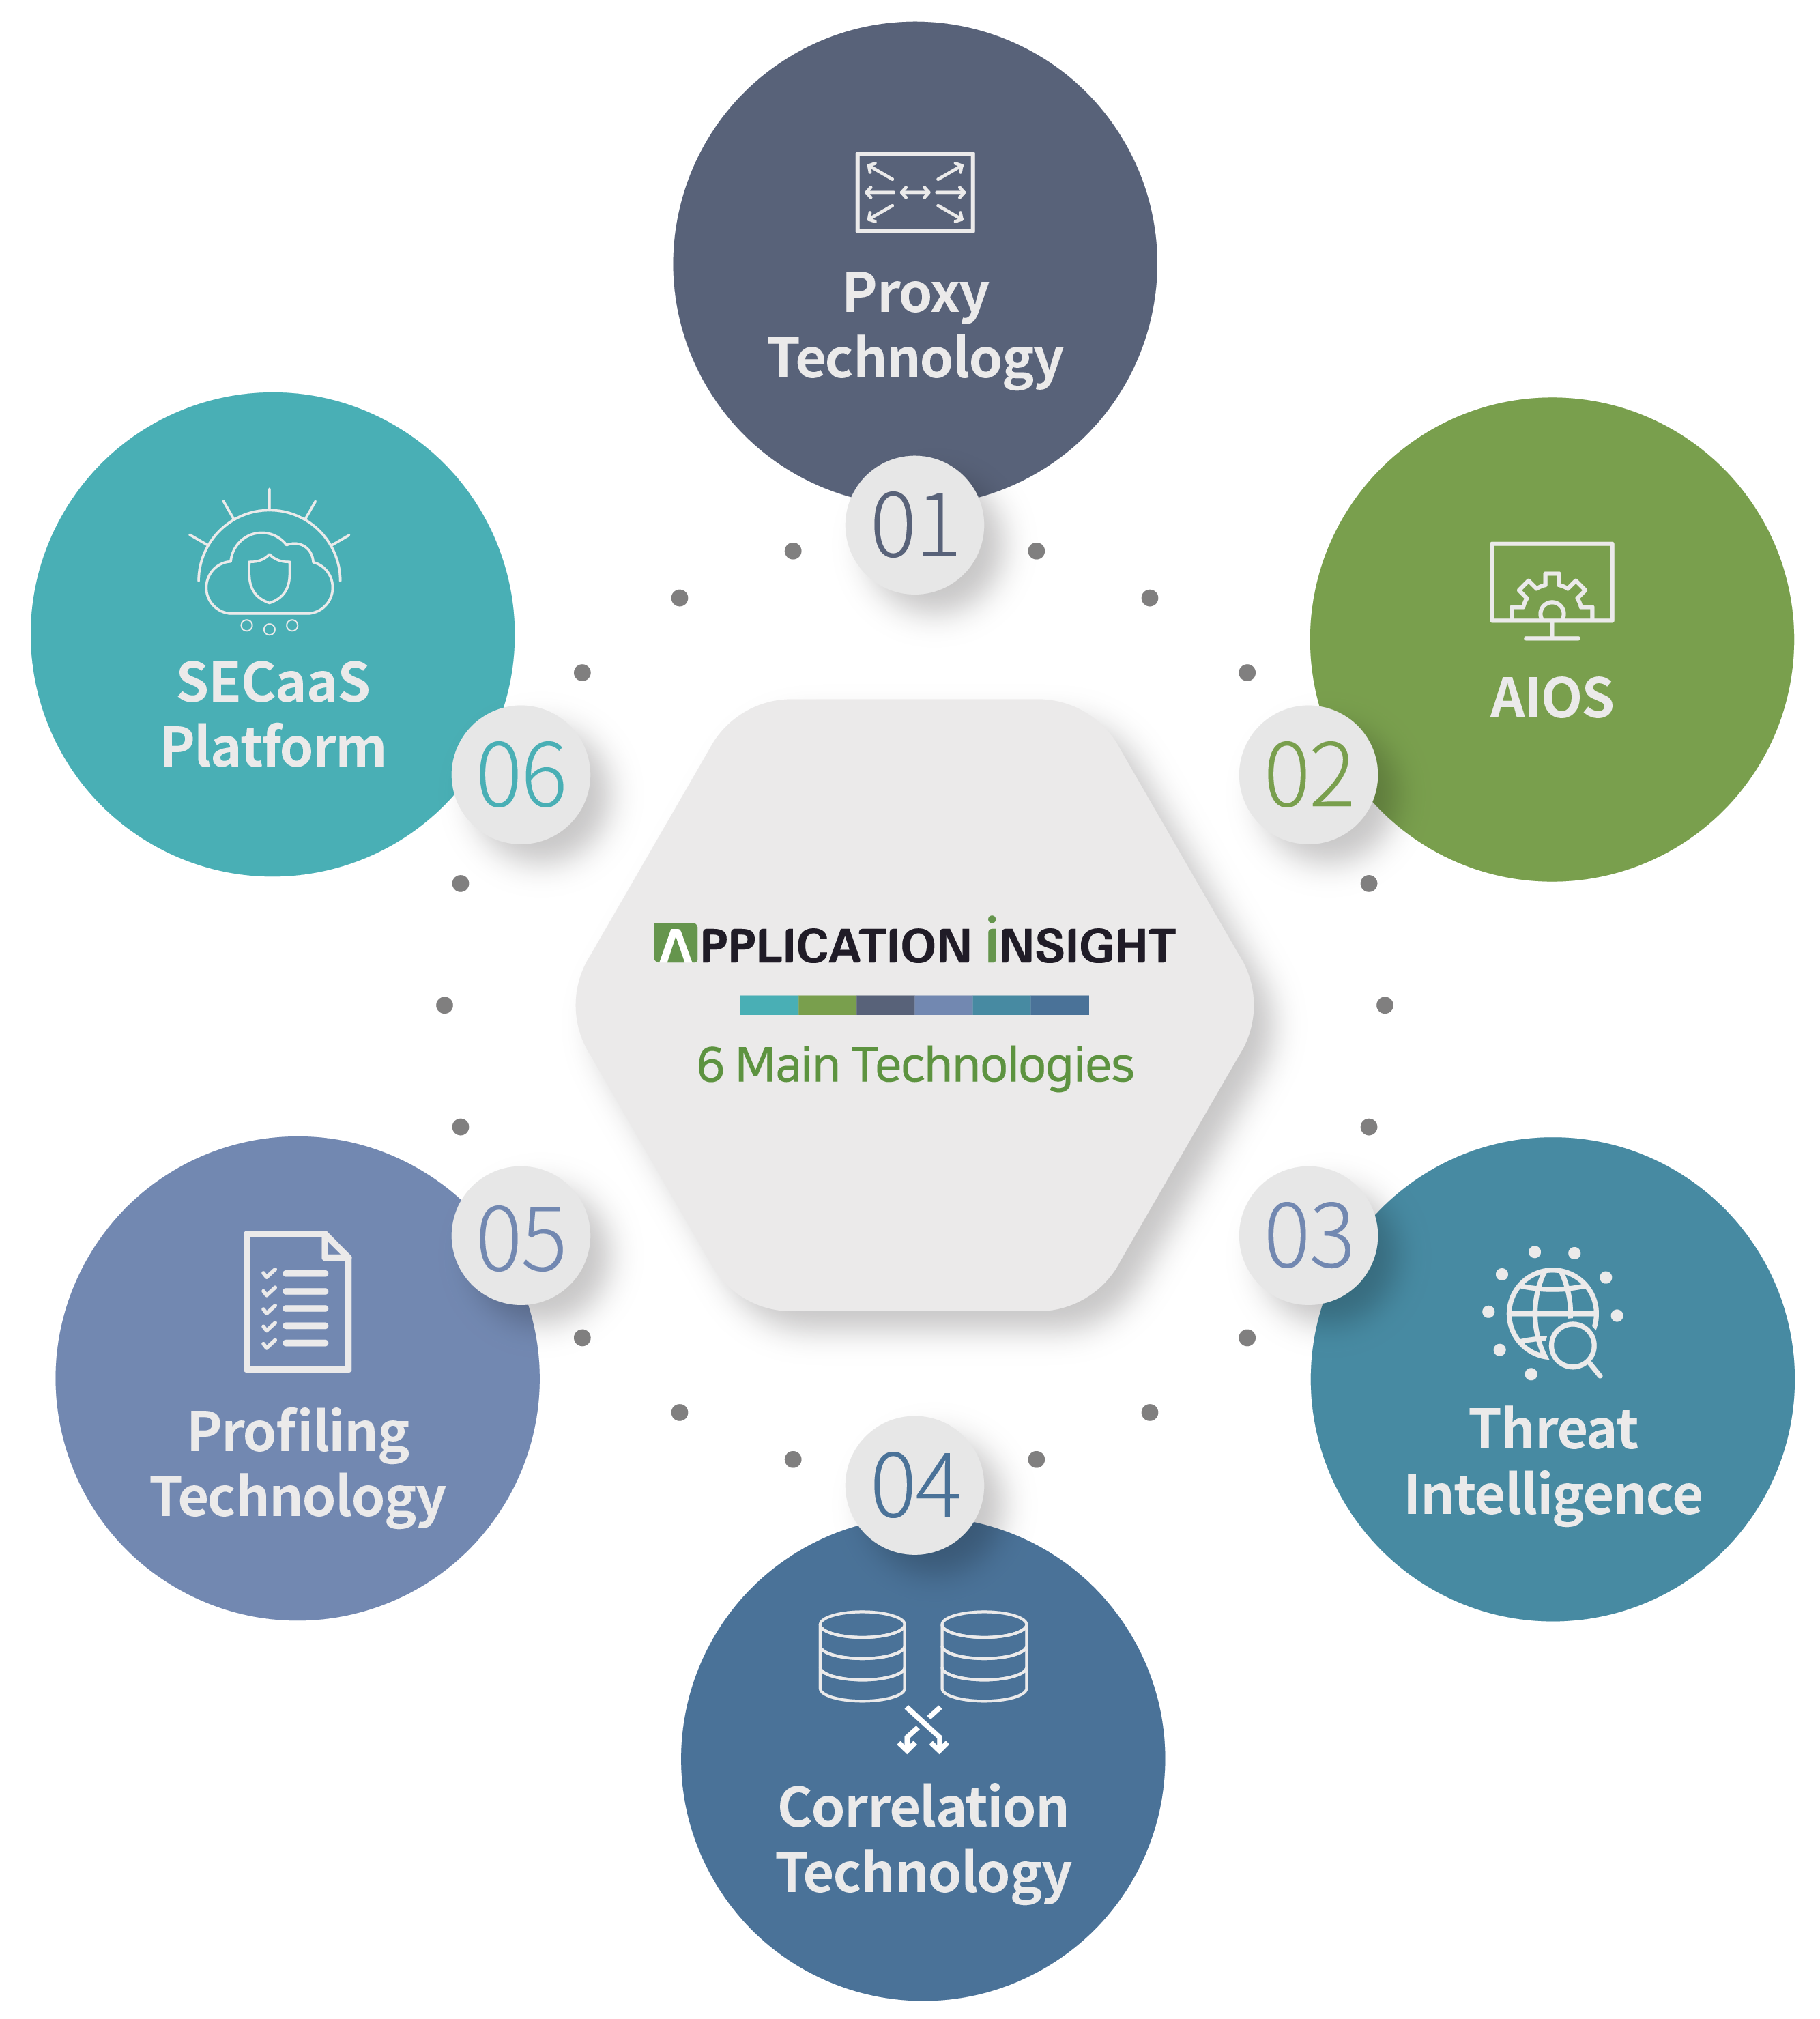 6 Technology by APPLICATION INSIGHT graphics